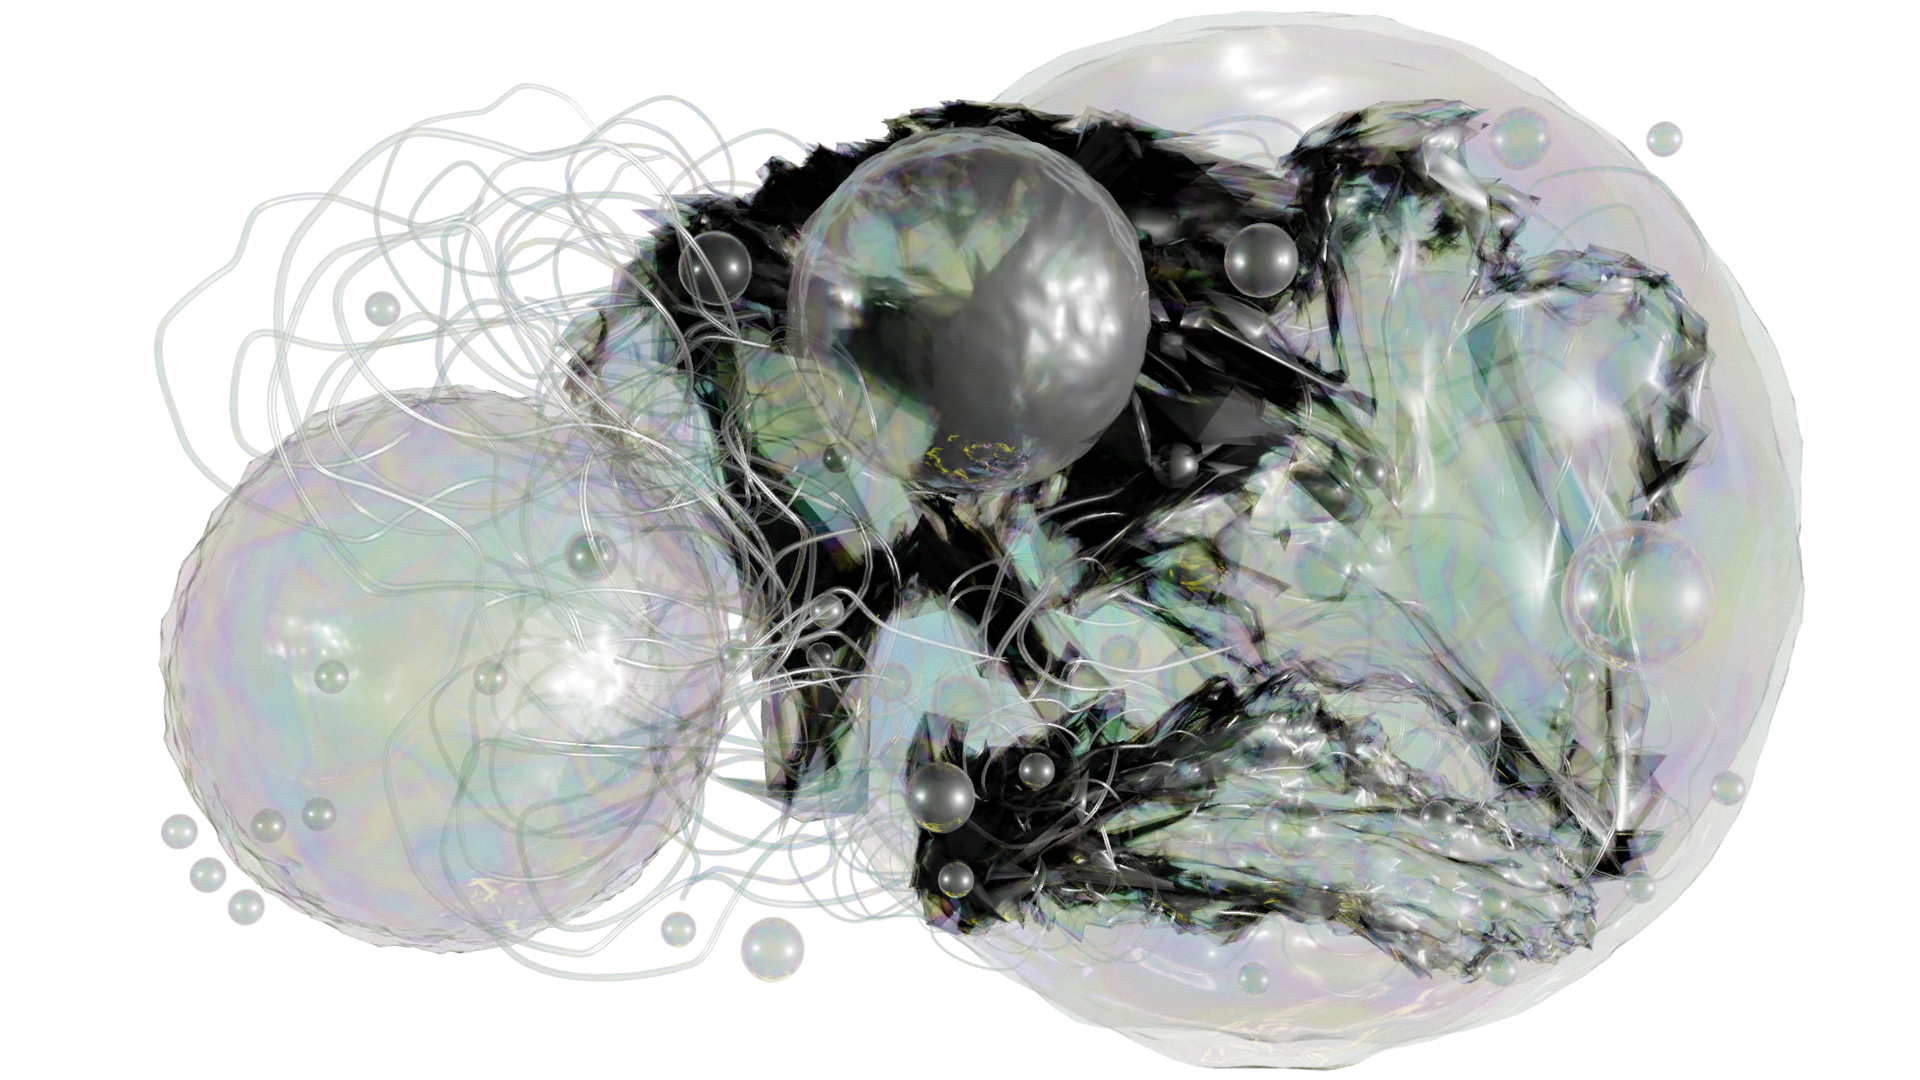 Iridescent bubbles of varying sizes fill the landscape image. Intertwined in these are lengths of wavy clear tubes. In the right hand side of the image is a black and iridescent expanse of material that has a feathered edge.